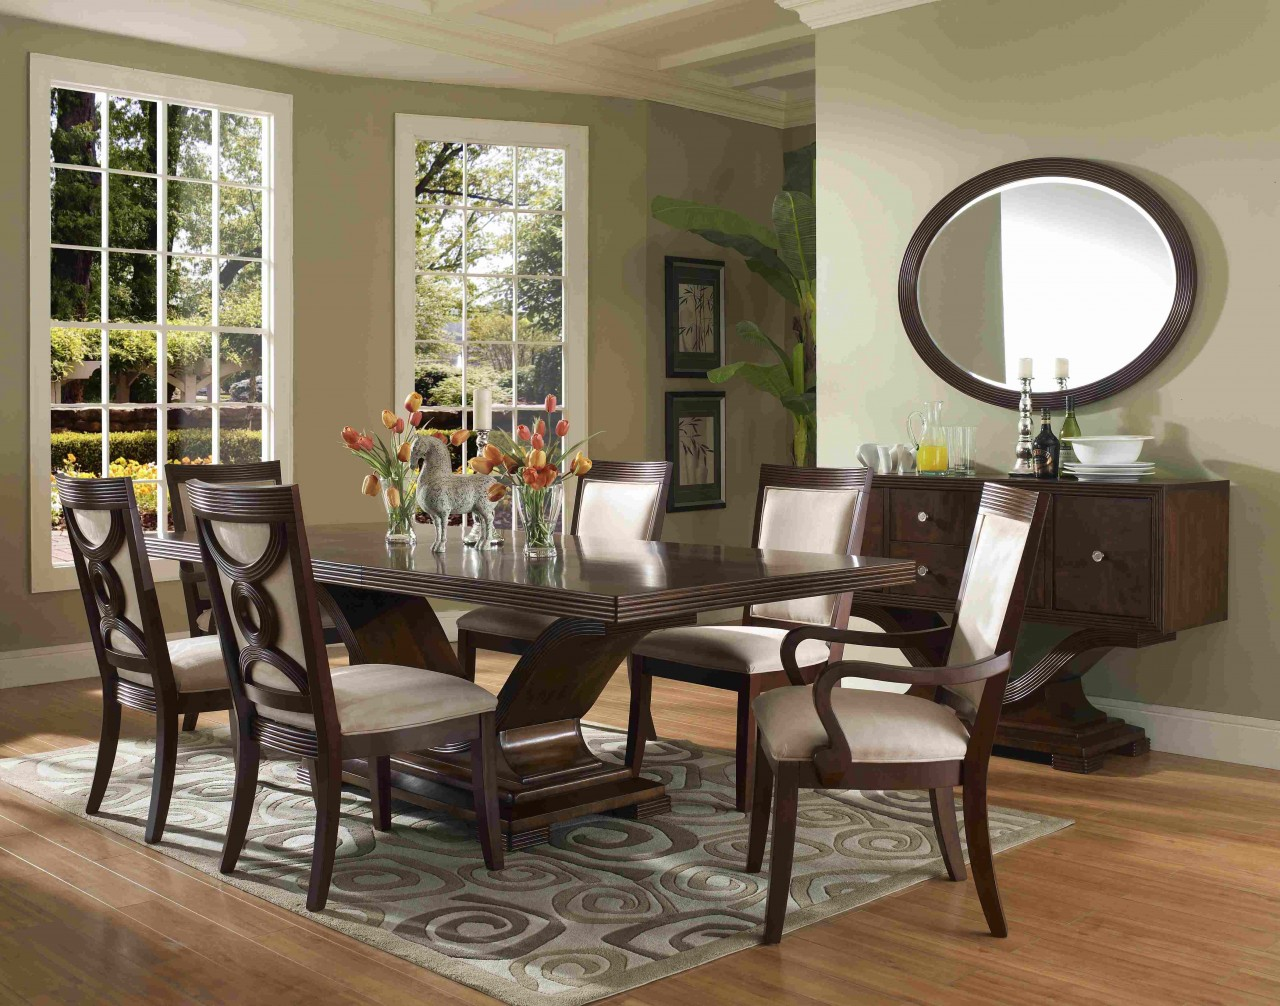 Spiegel Esszimmer Silber Perfect Formal Dining Room Sets For 8 Homesfeed